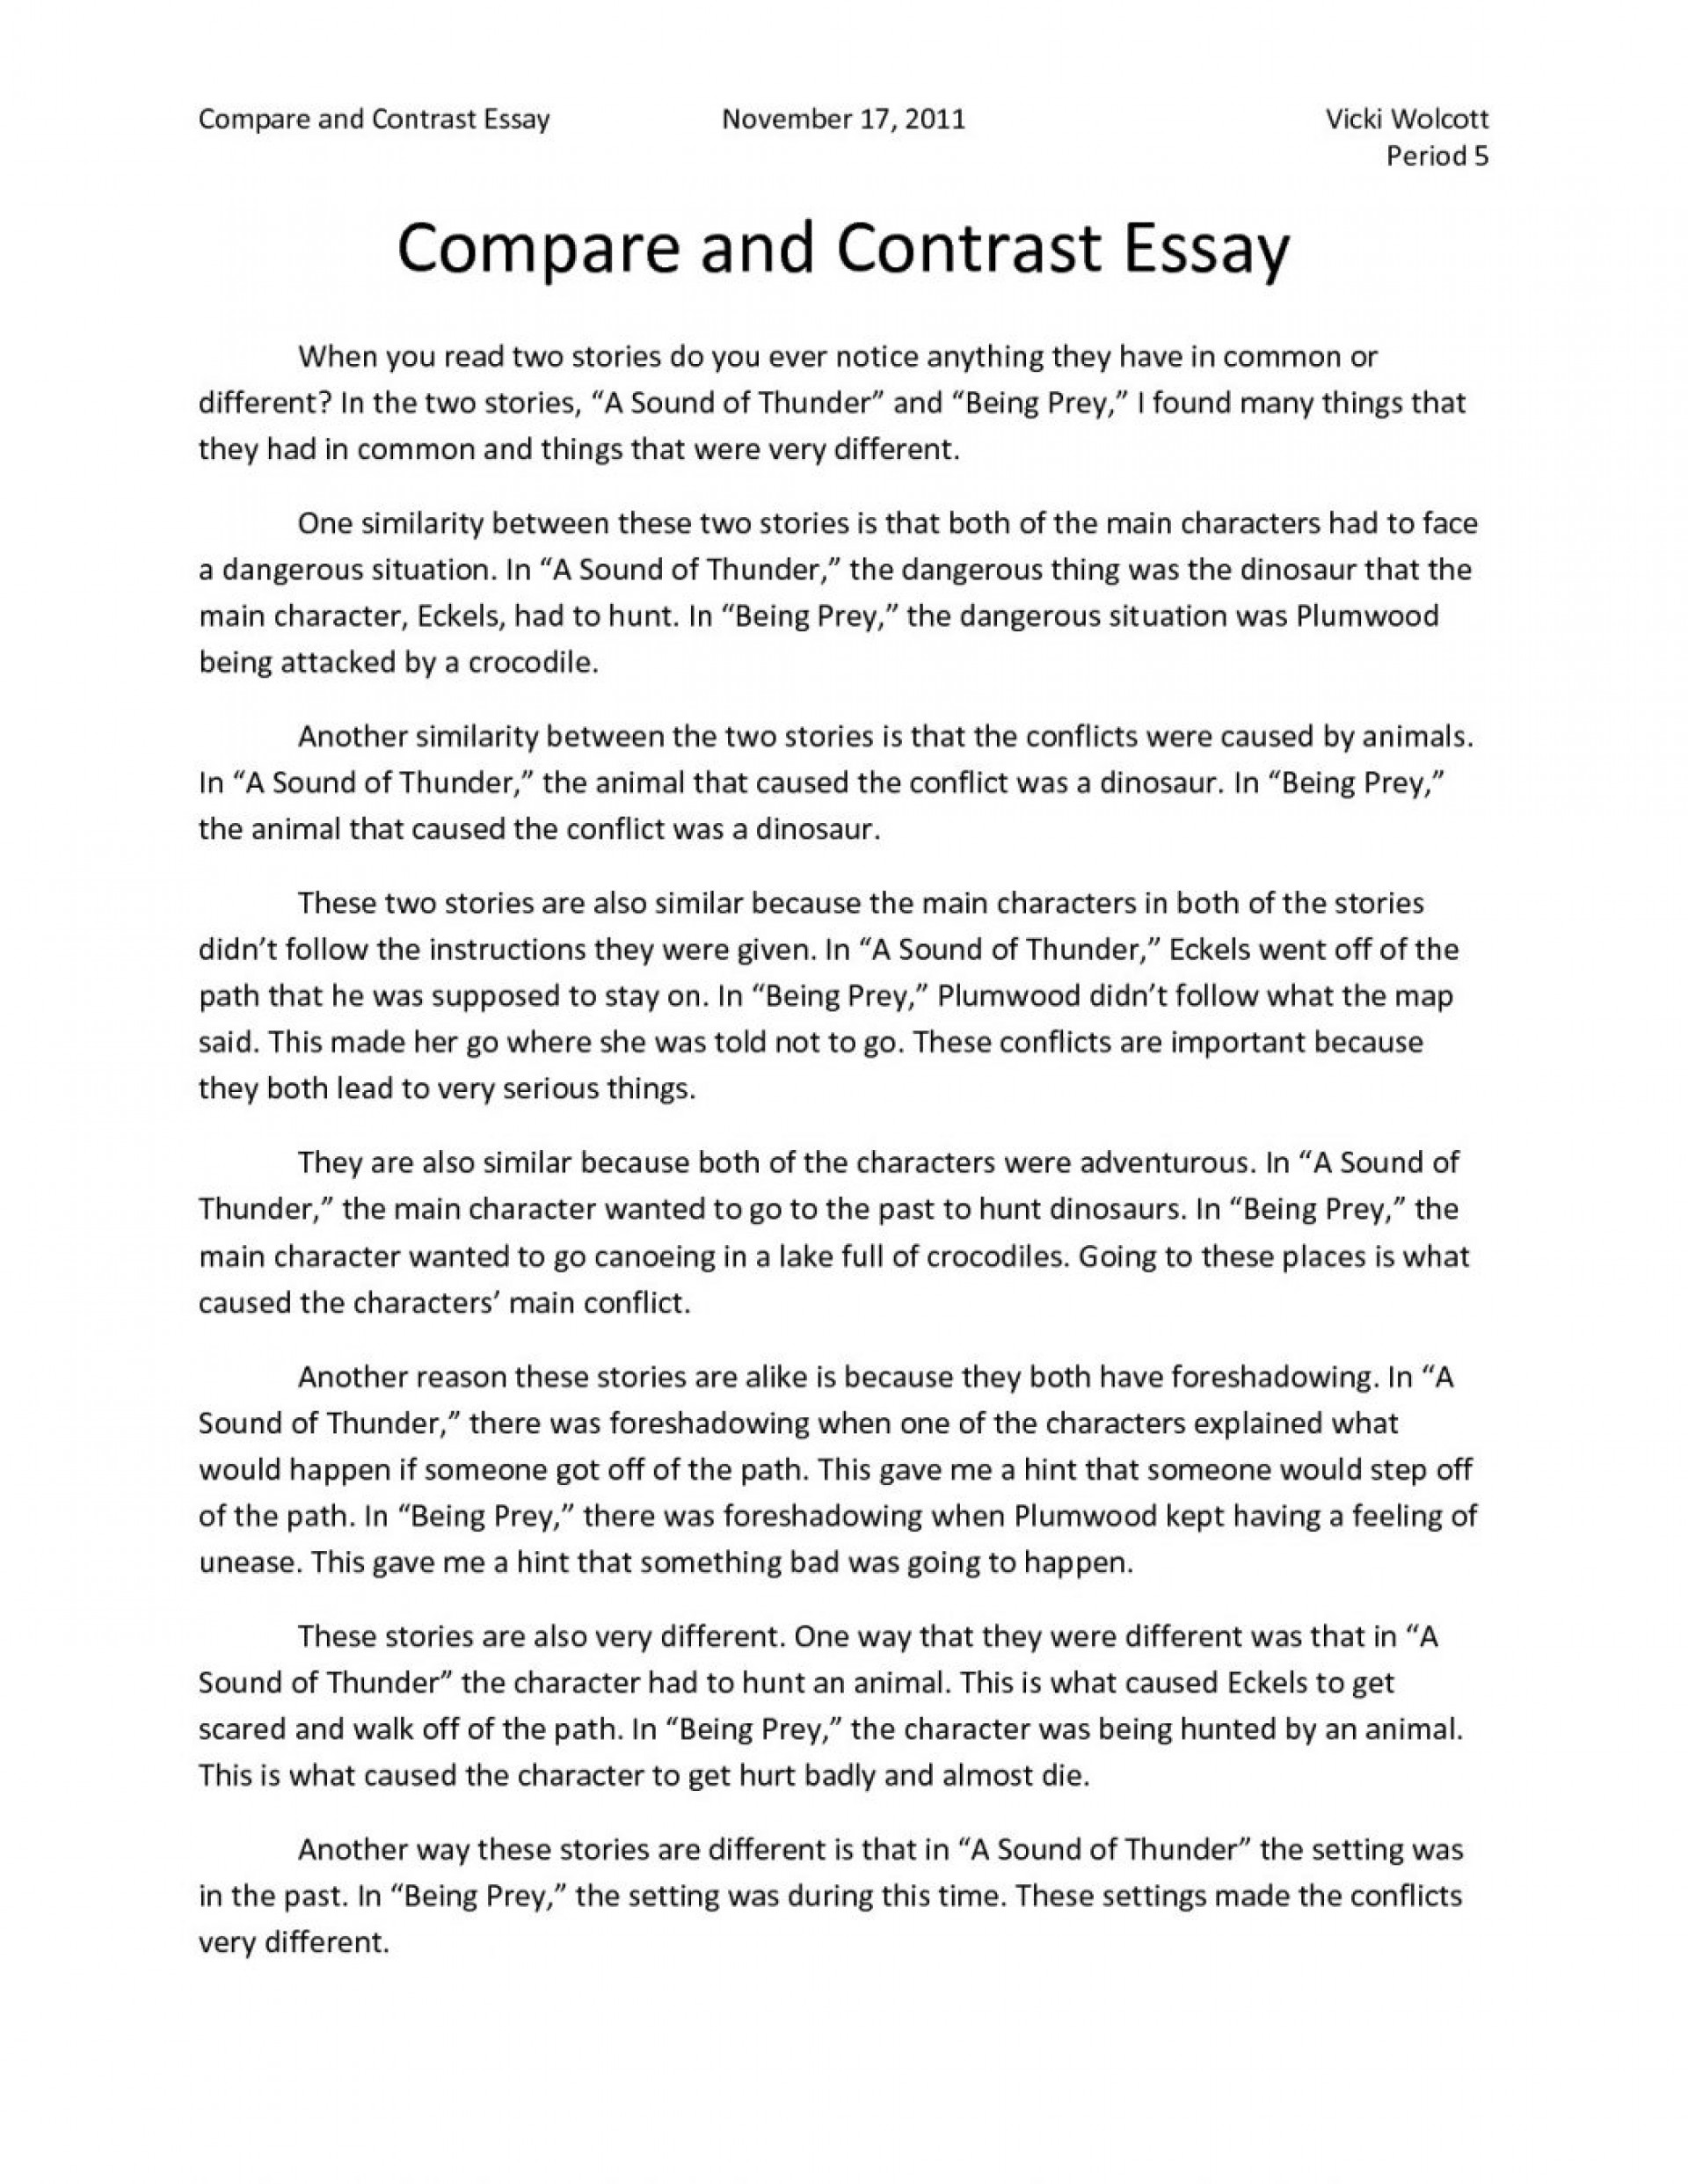 022 Compare And Contrast Essay Outline Template Printables Corners Colleg College High School Level For Topics Students Free Pdf Vs 1048x1356 Impressive Worksheet Format 5 Paragraph Point By 1920